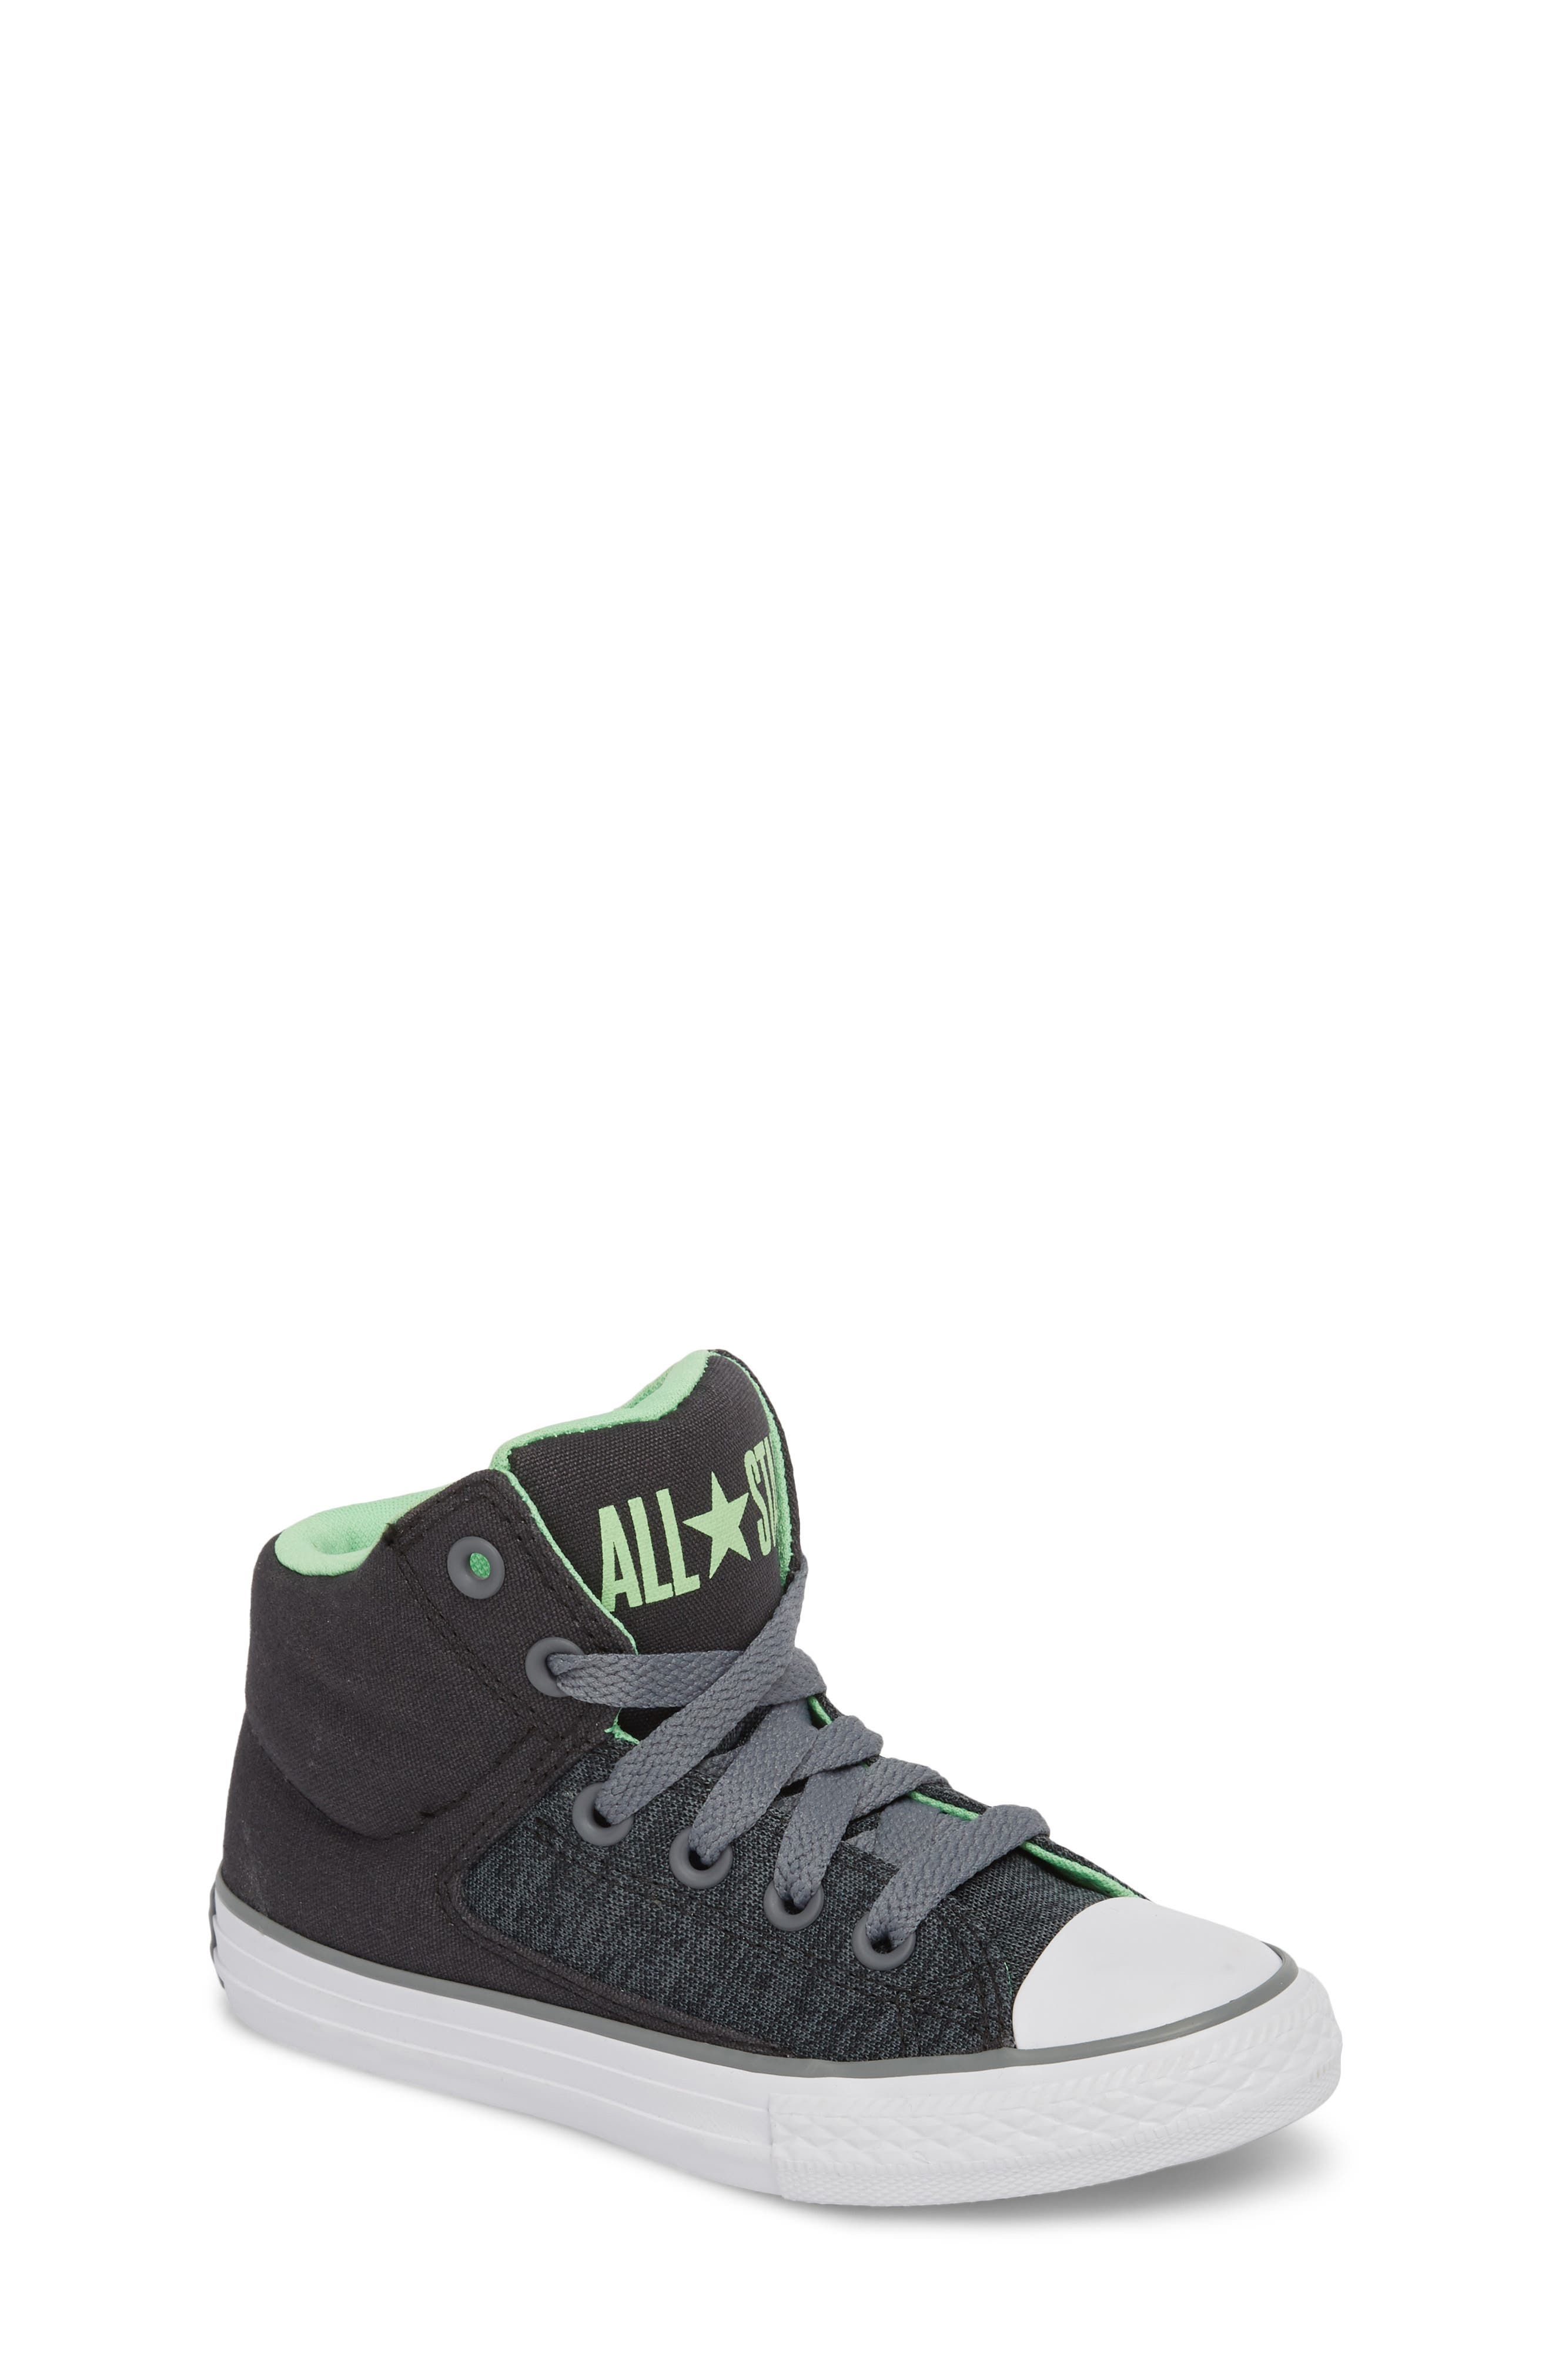 Chuck Taylor<sup>®</sup> All Star<sup>®</sup> High Street High Top Sneaker,                             Main thumbnail 1, color,                             012